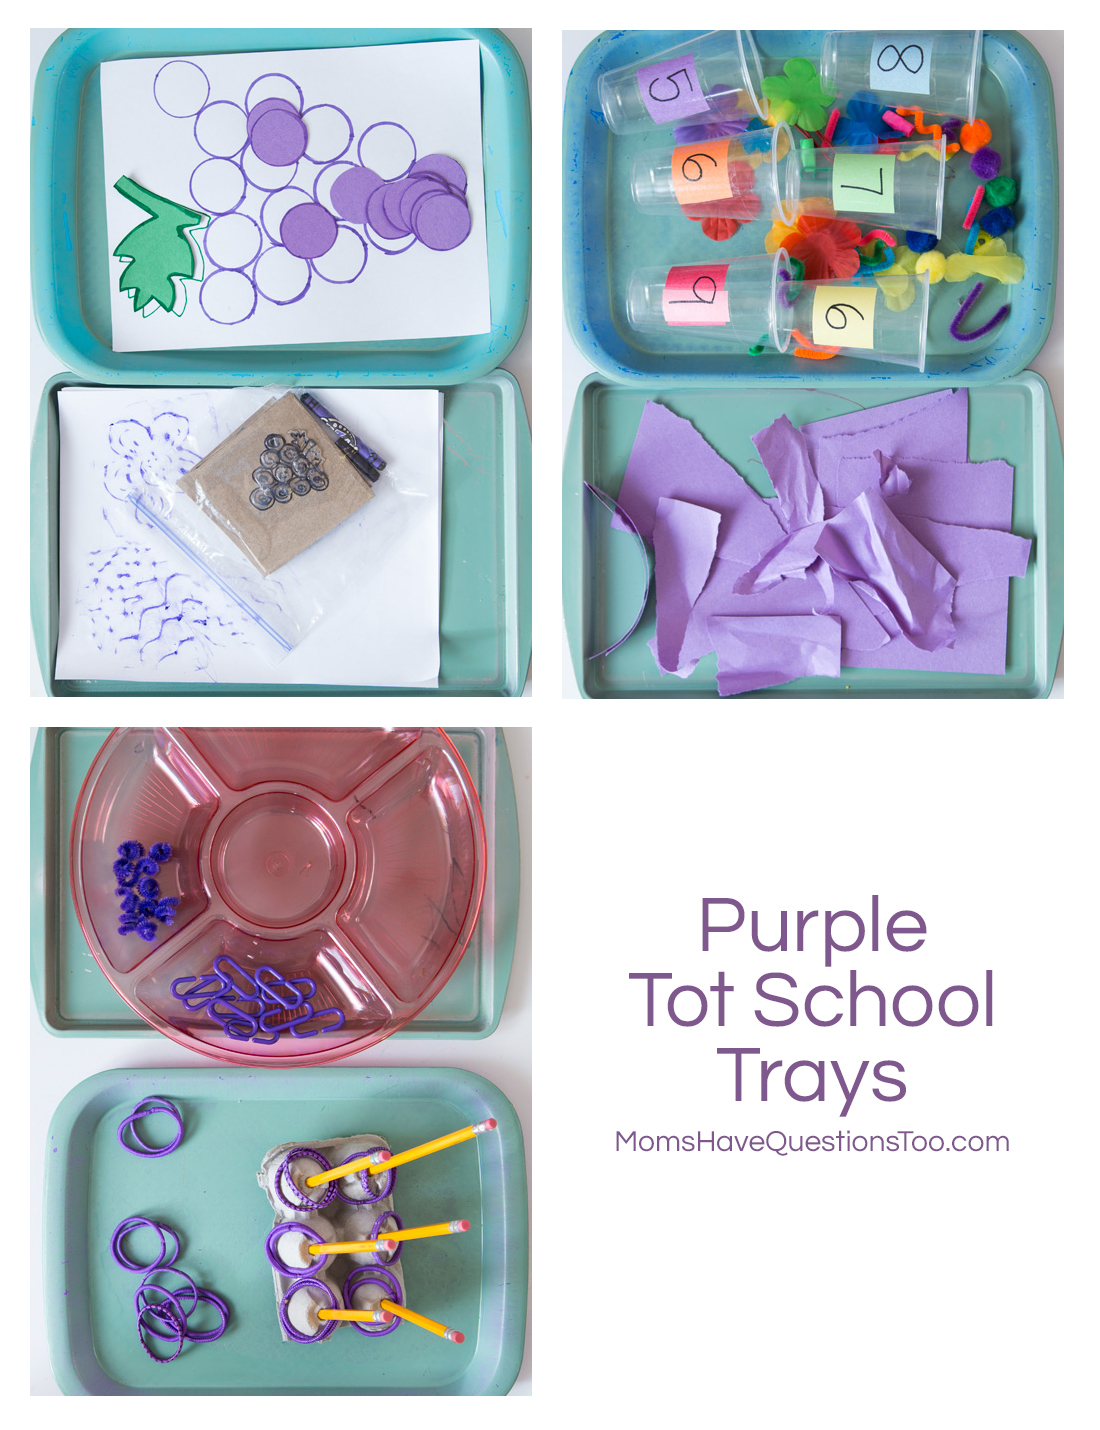 Purple Tot School Trays - Moms Have Questions Too